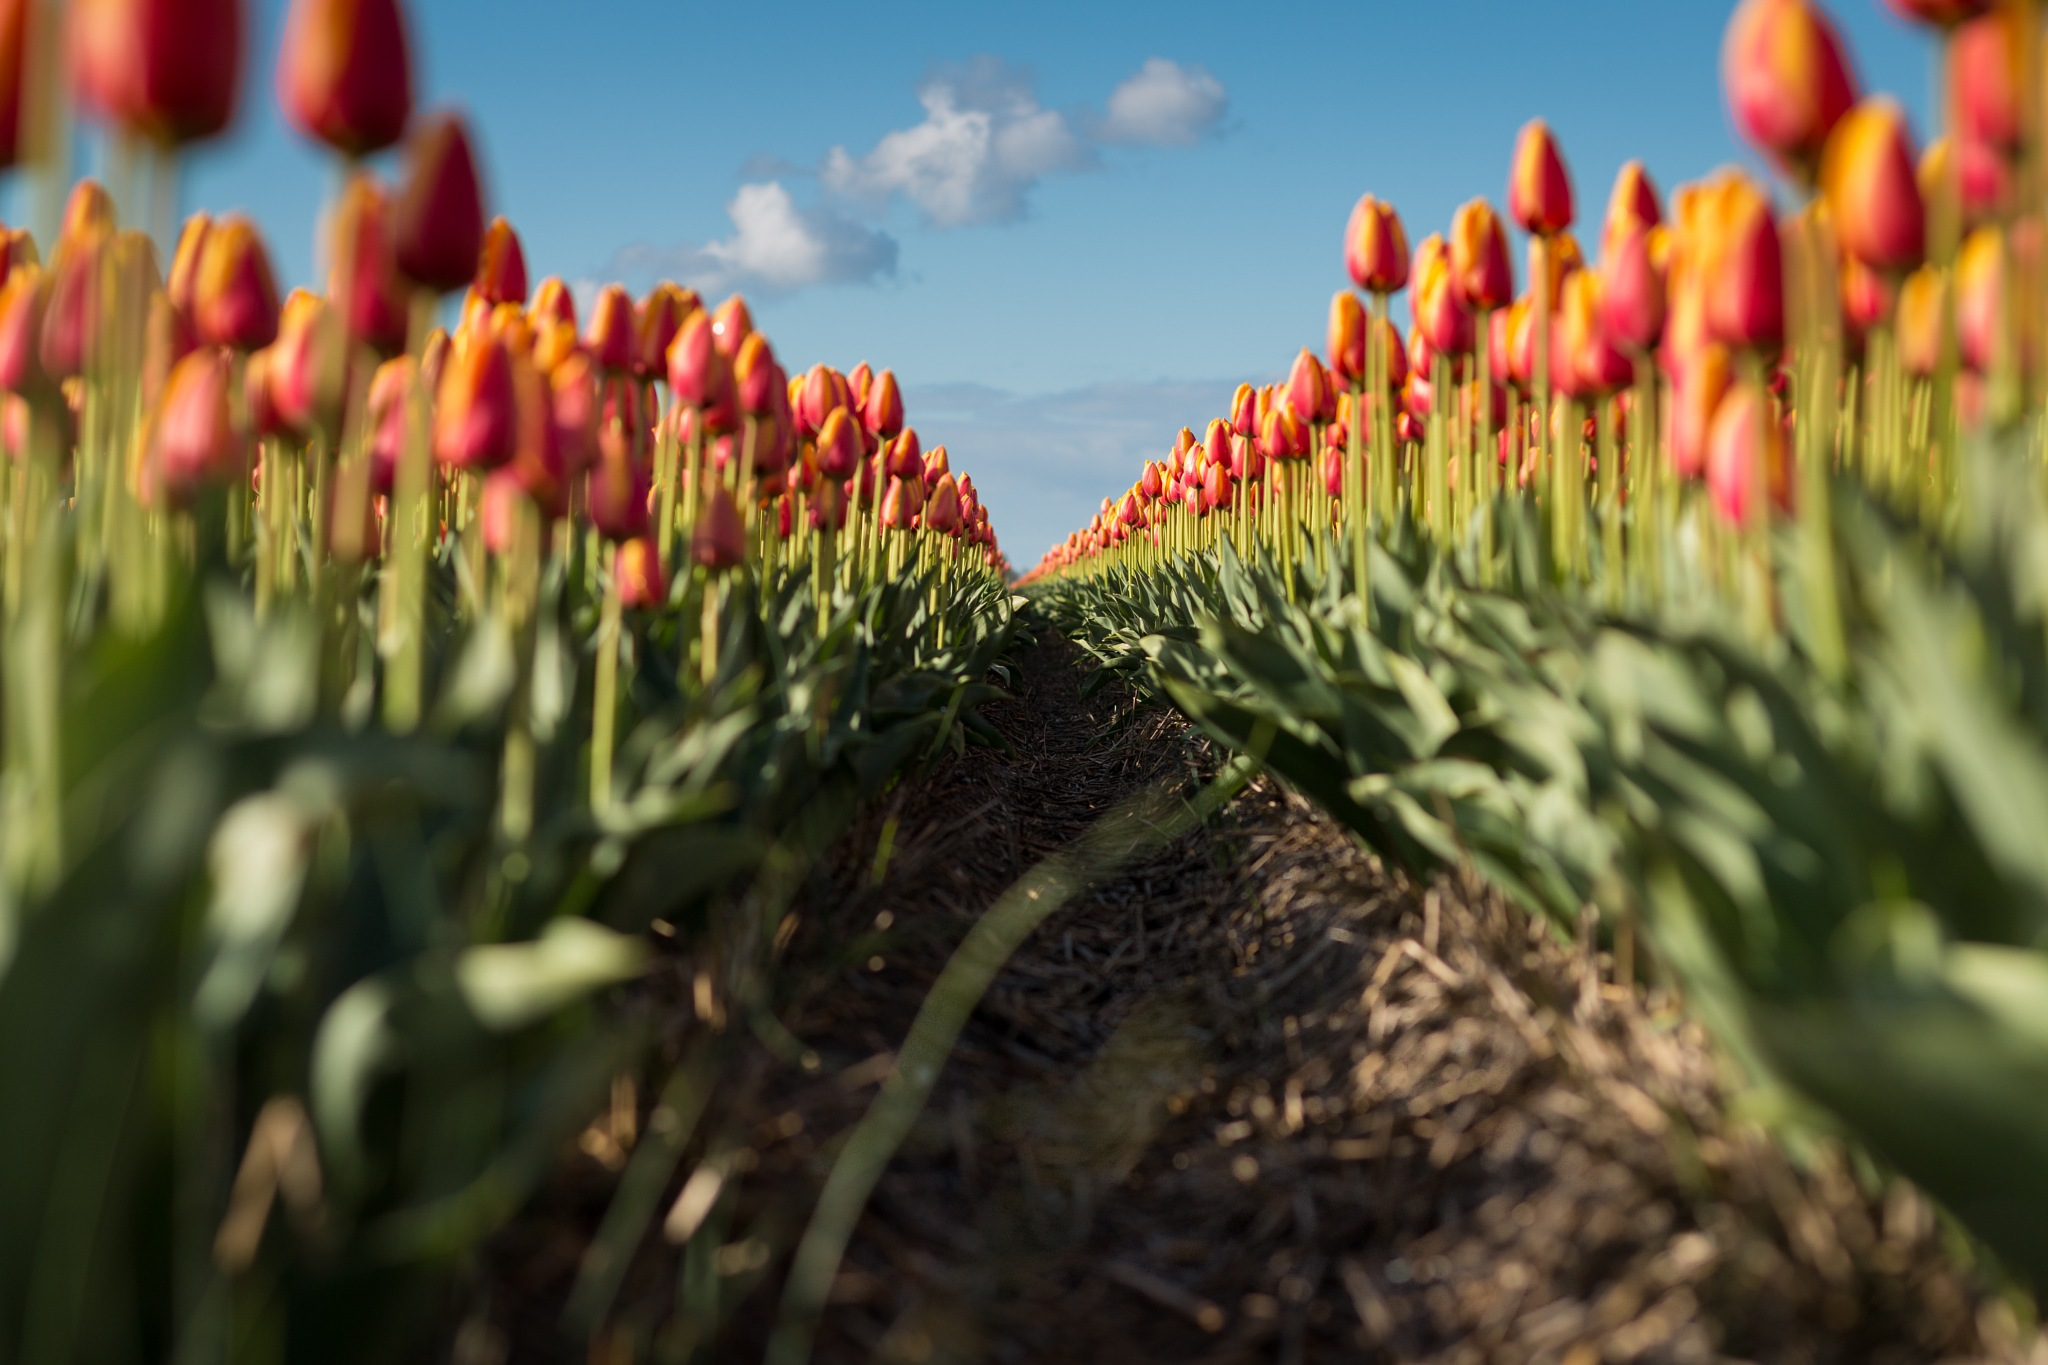 Rows of tulips by Dennis Moes